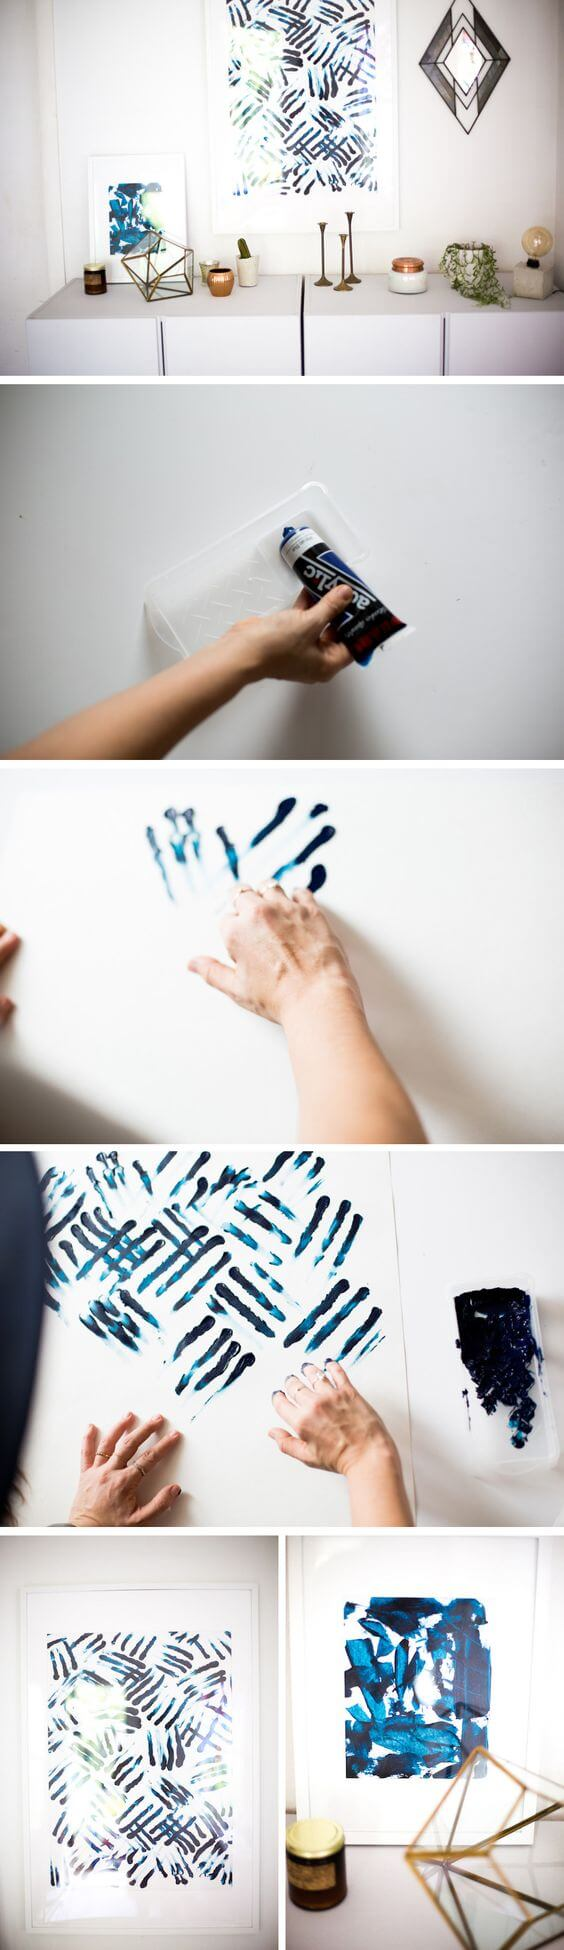 how to draw a picture just